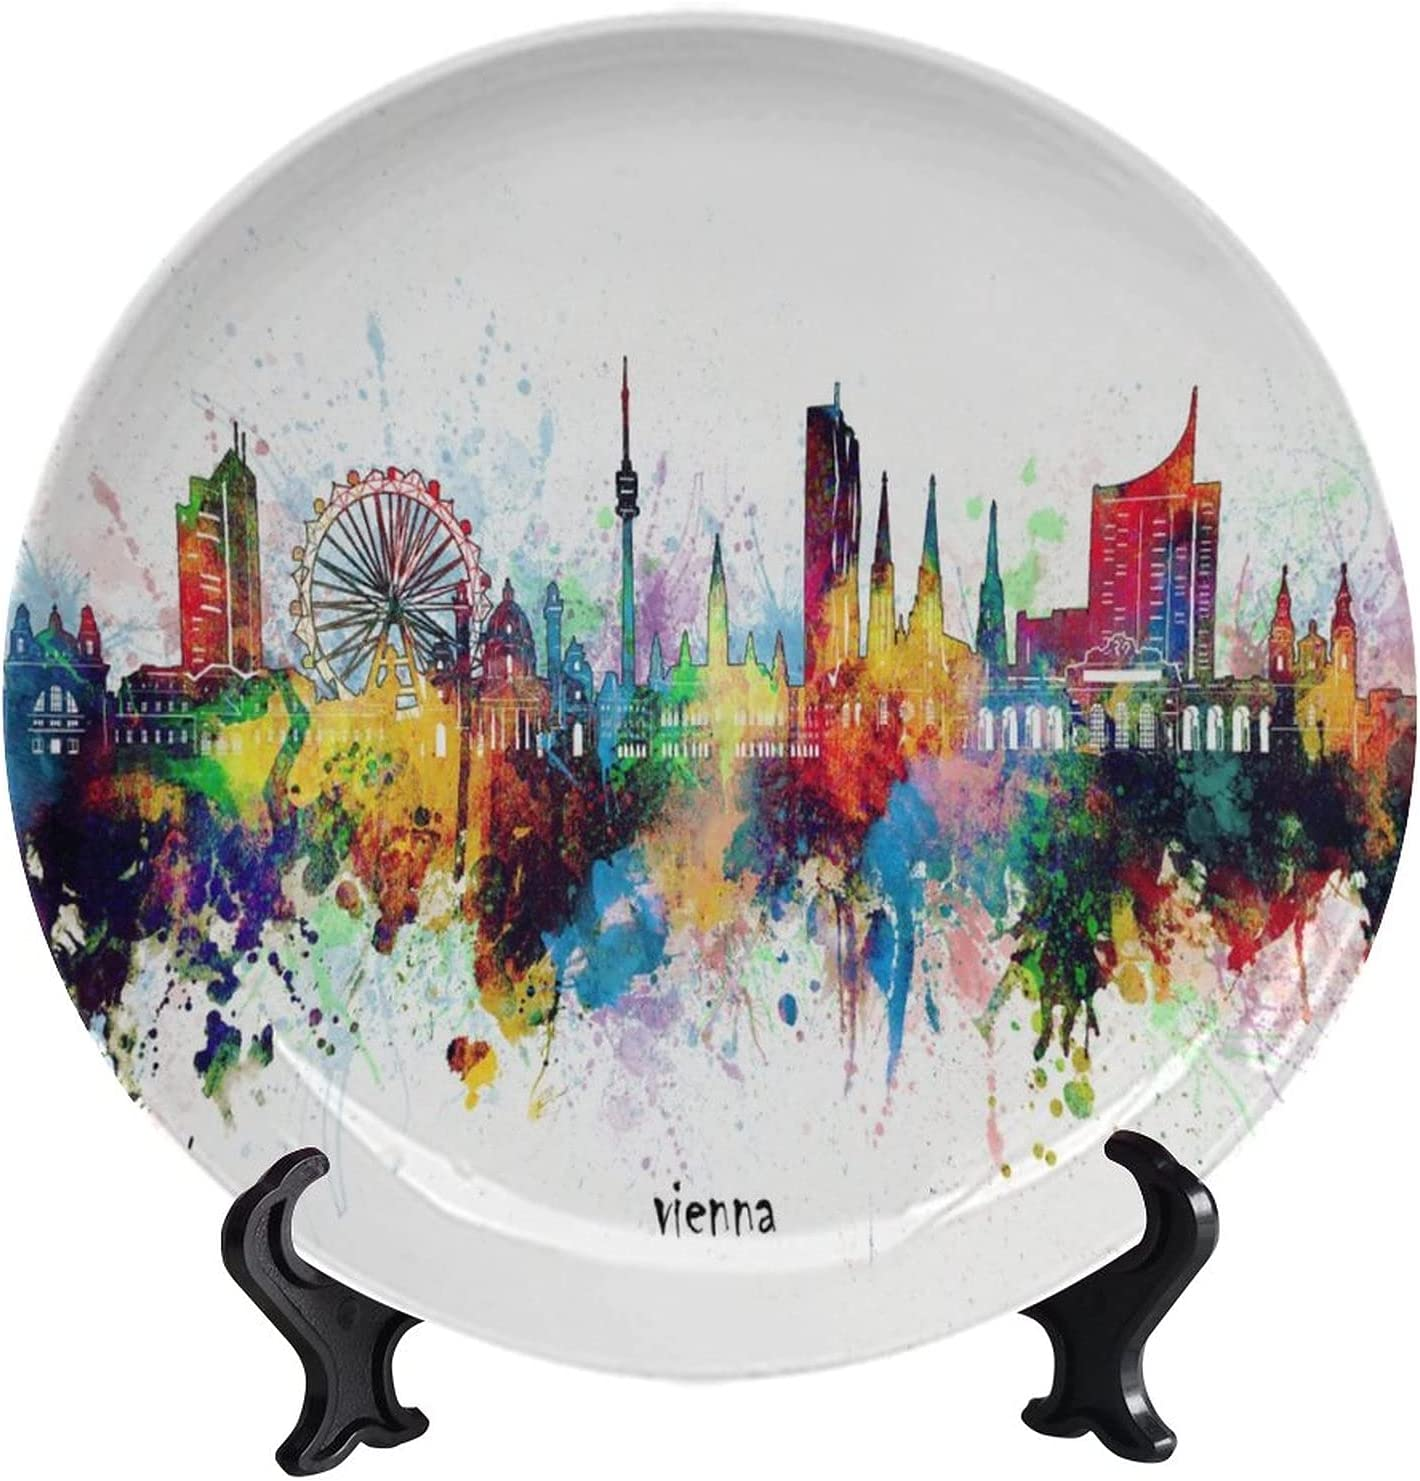 Lyzelre Decorative Ceramic Plates Challenge the lowest price of Gorgeous Japan ☆ Colourful City Artistic Vienna